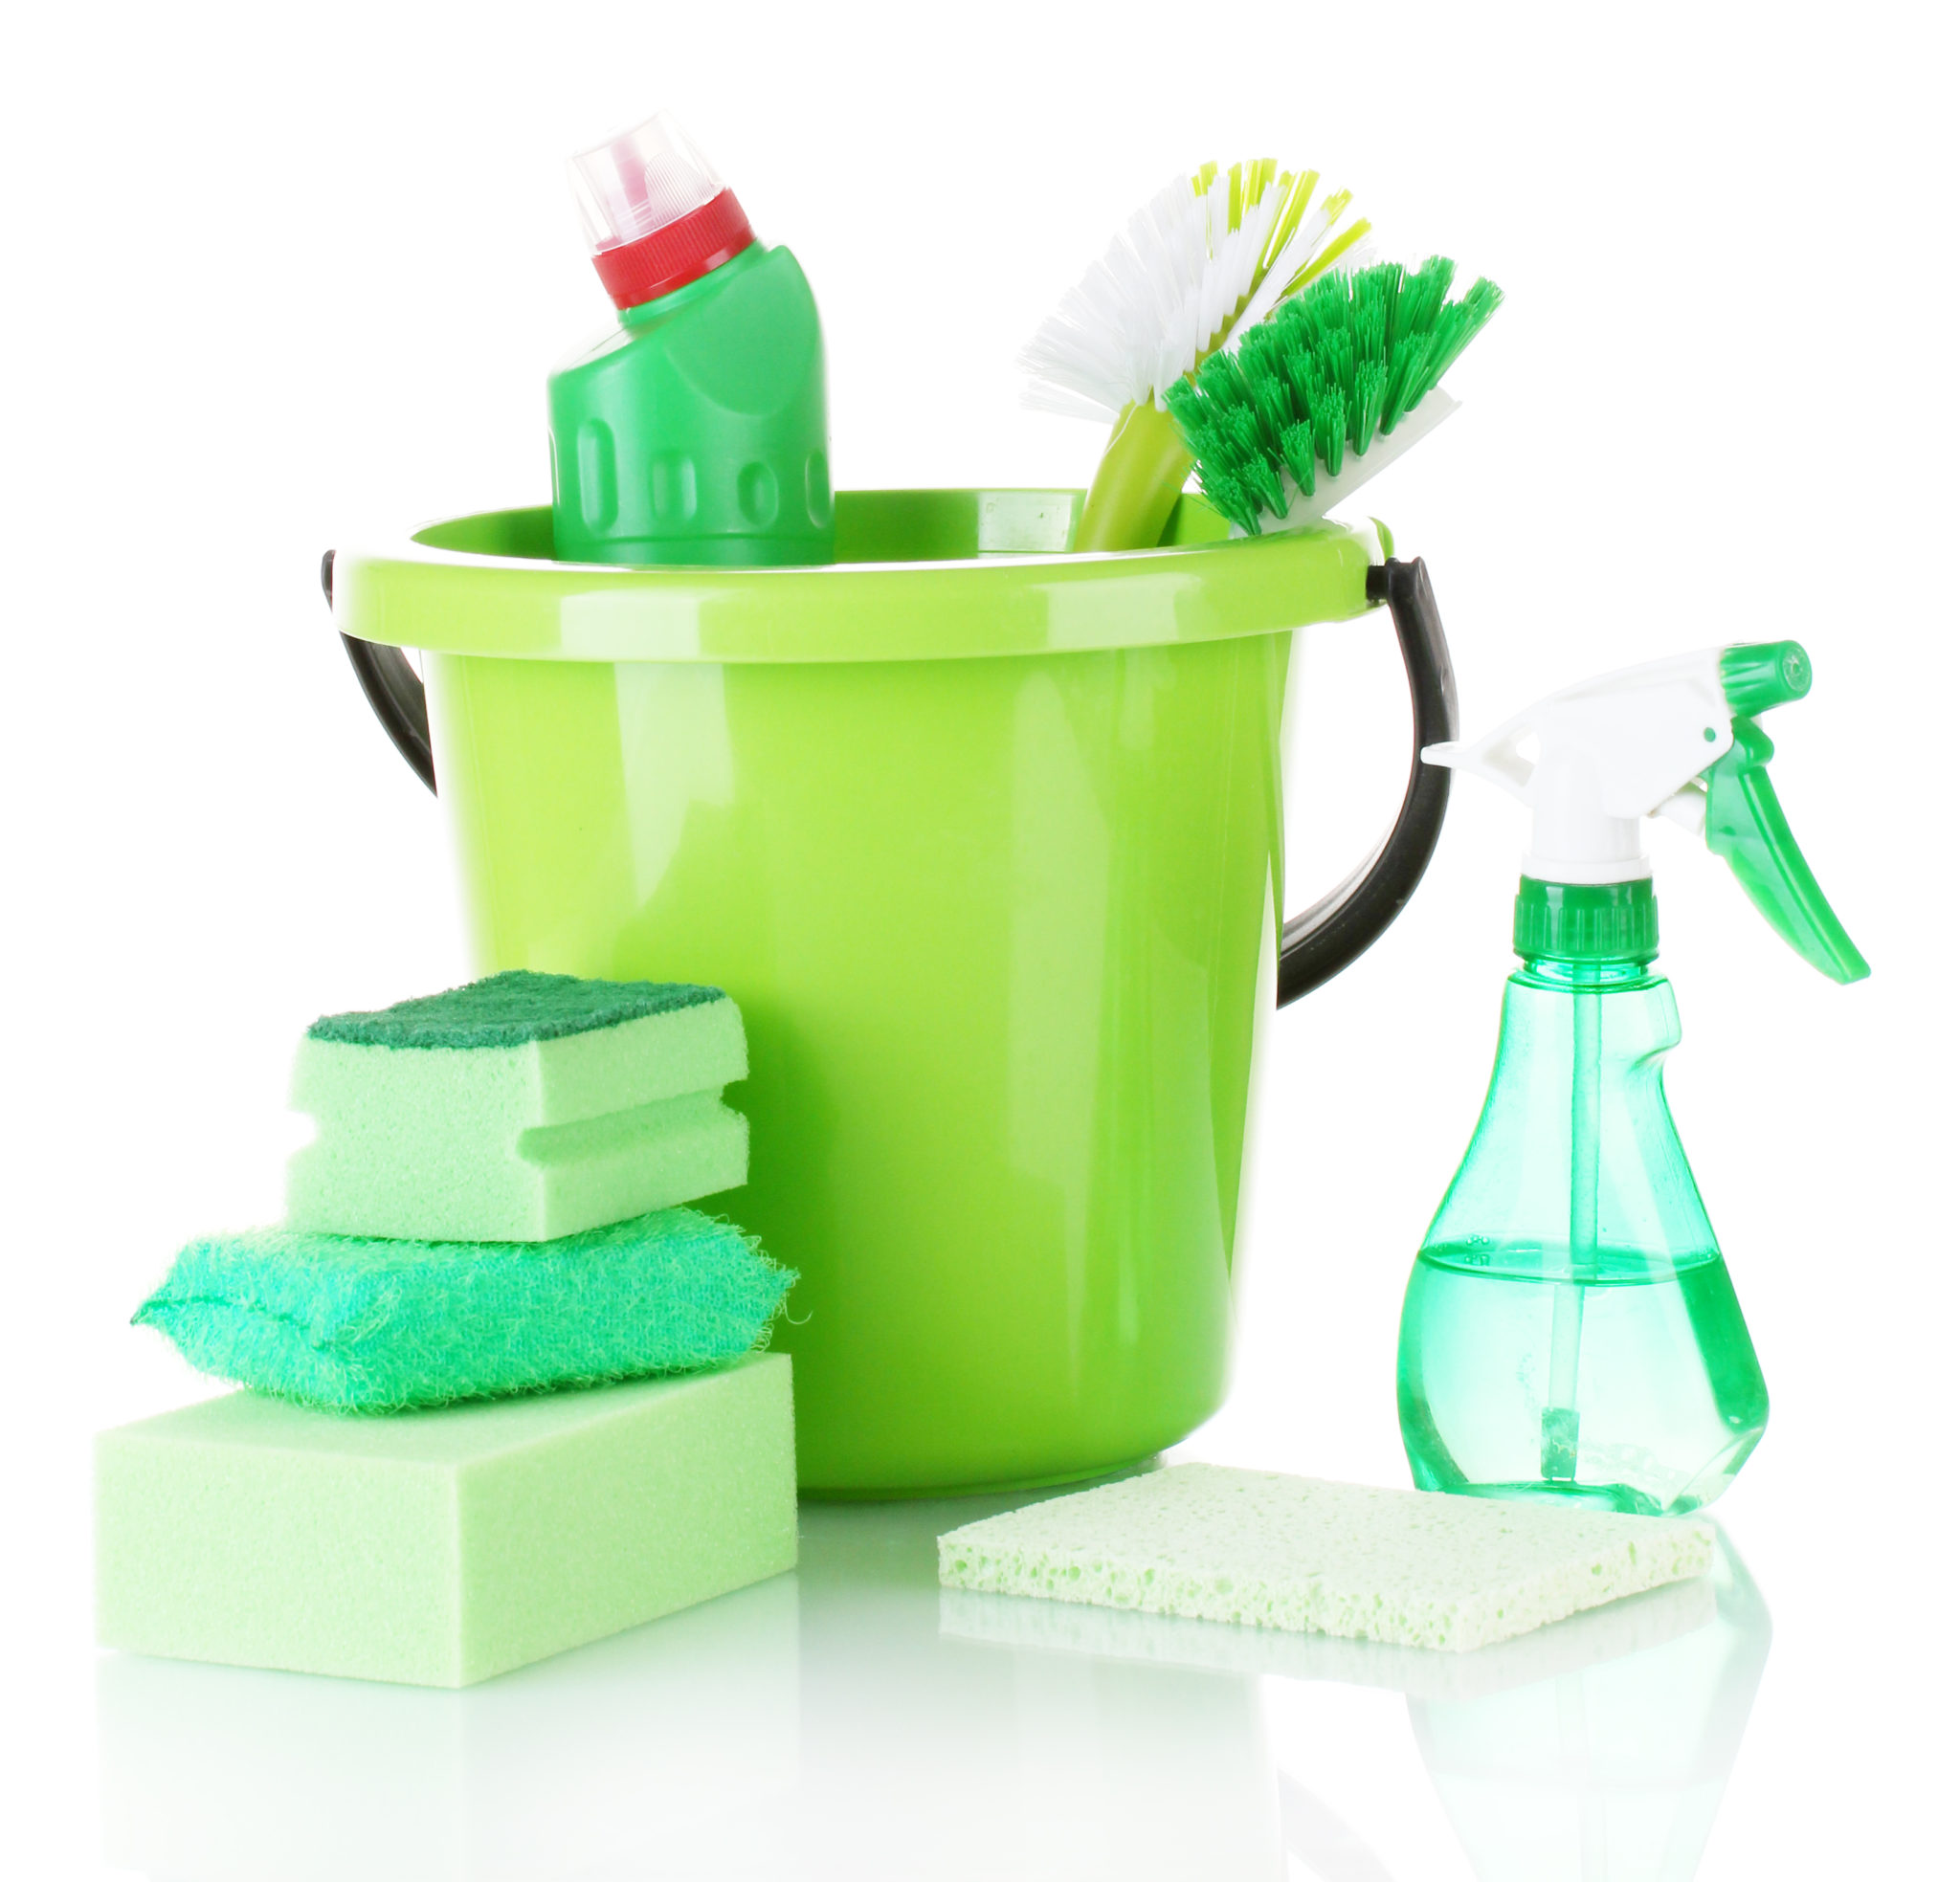 green cleaning products use by green ladies cleaning services